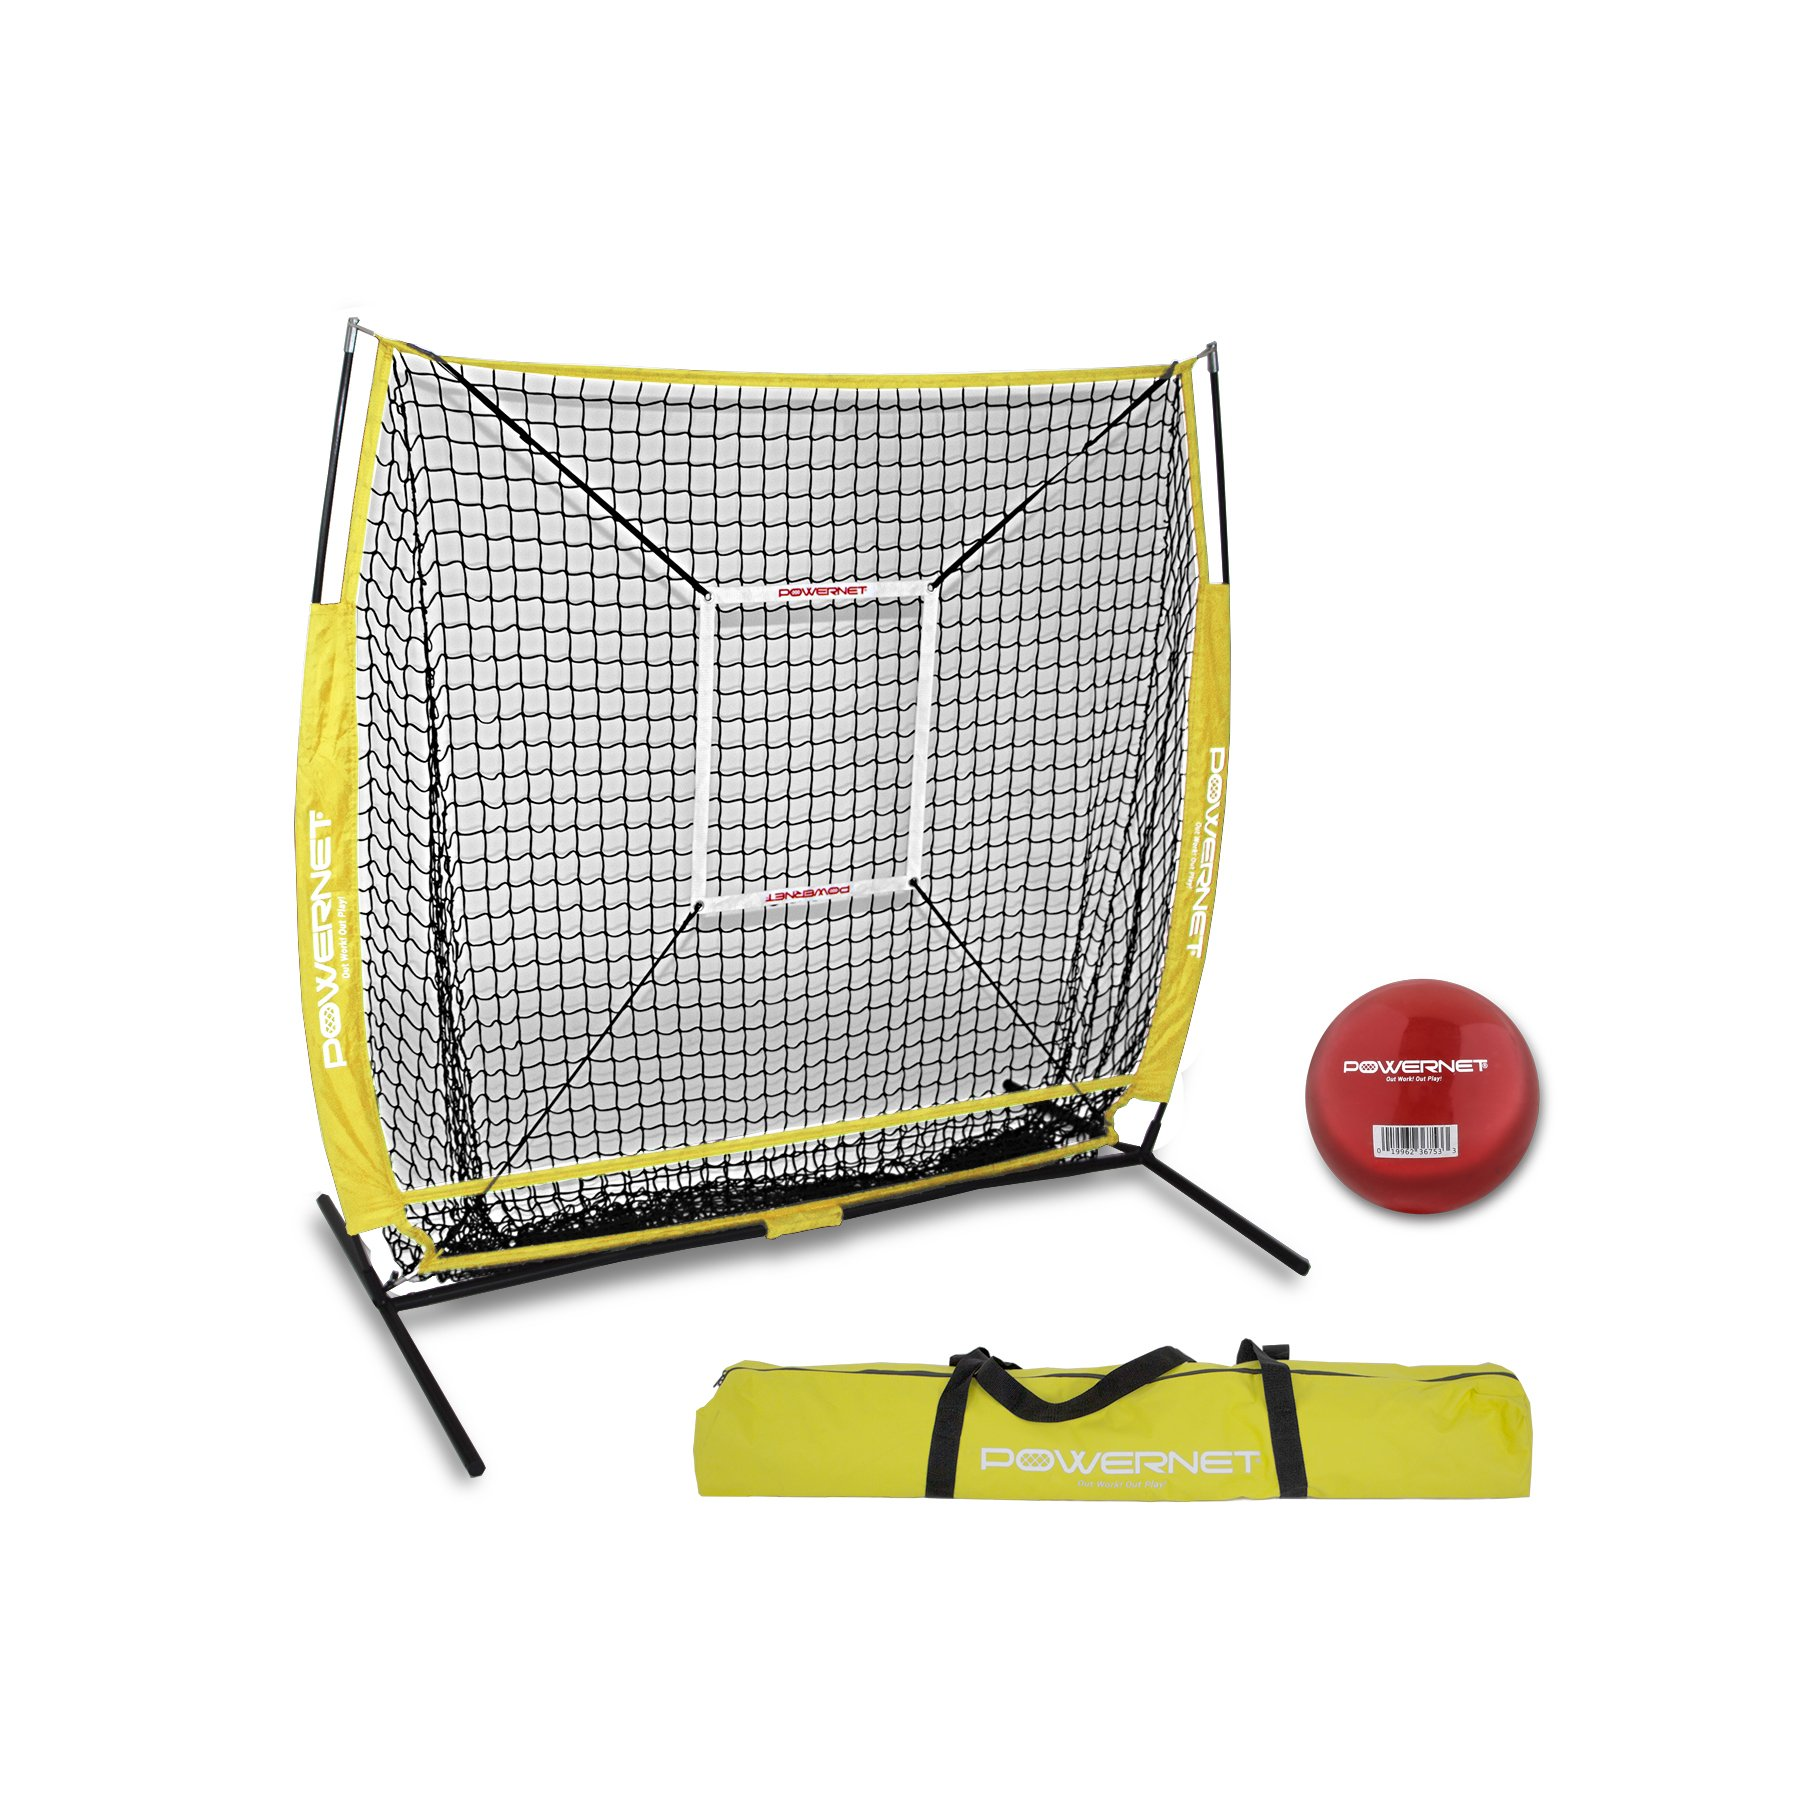 PowerNet 5x5 Practice Net + Strike Zone + Weighted Training Ball Bundle (Yellow) | Baseball Softball Coaching Aid | Compact Lightweight Ultra Portable | Team Color | Batting Screen by PowerNet